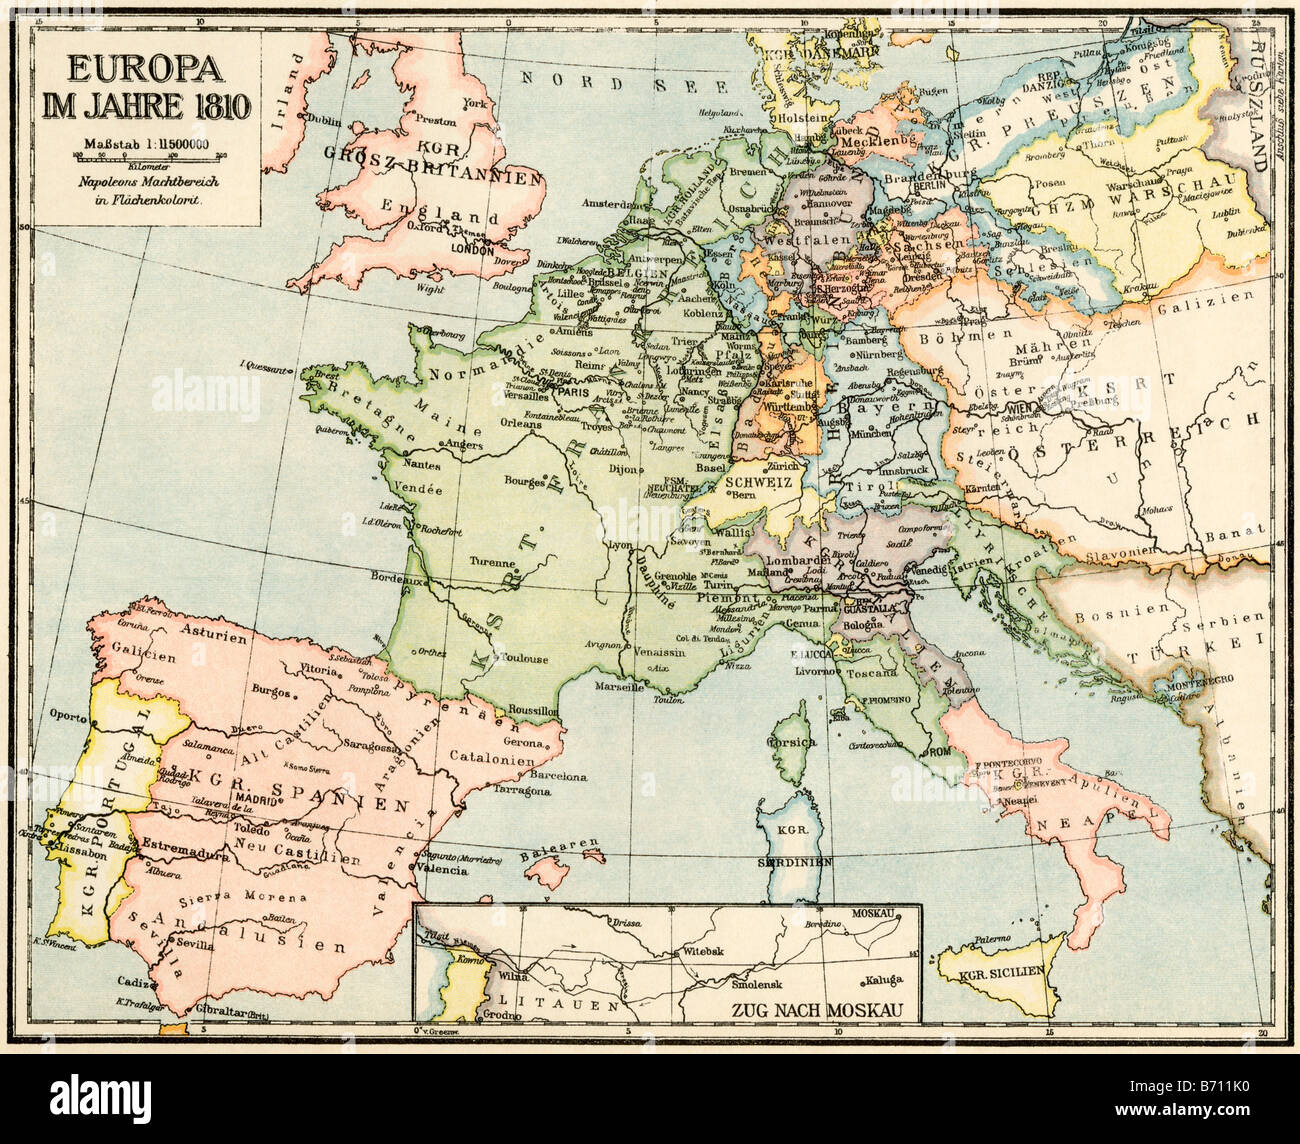 Map of Europe in 1810 during the Napoleonic Wars, labels in German. Color lithograph - Stock Image